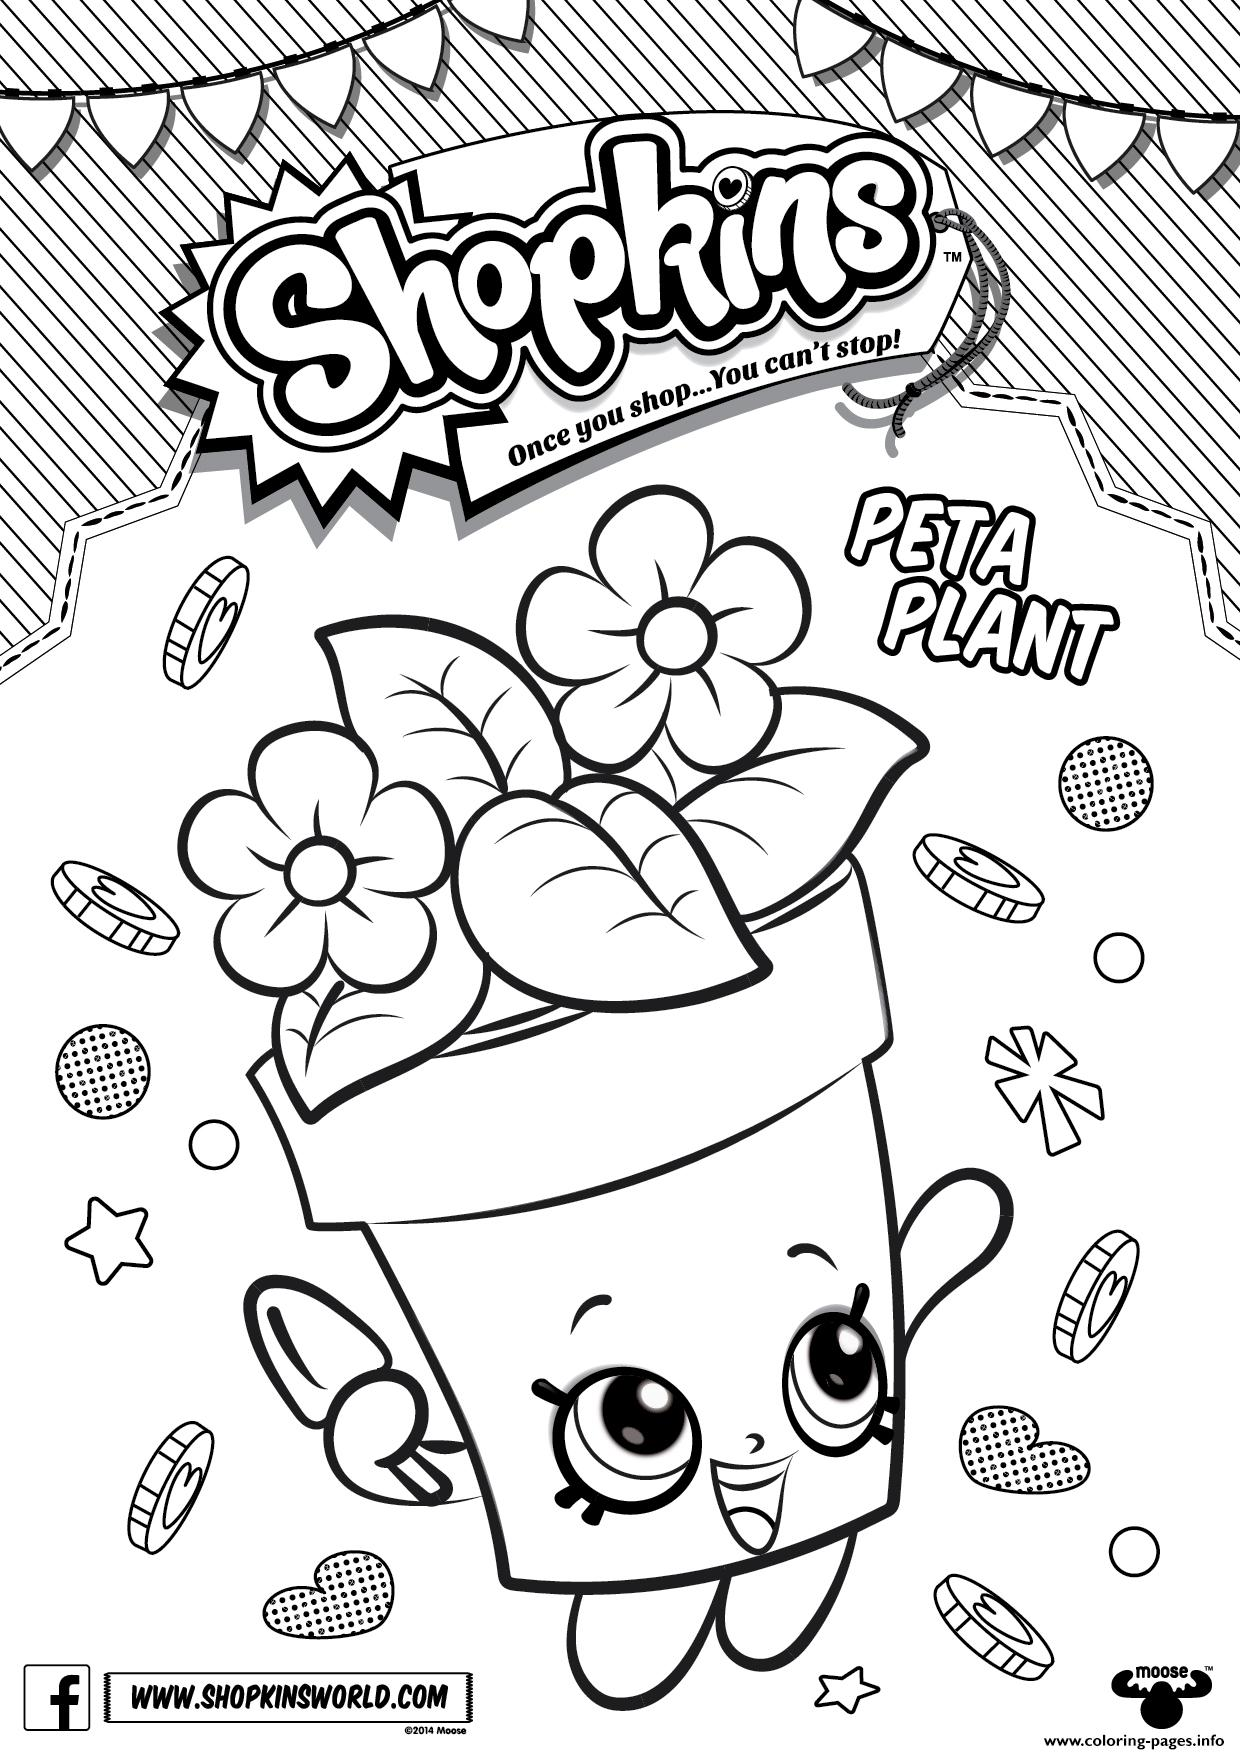 Shopkins Peta Plant Coloring Pages